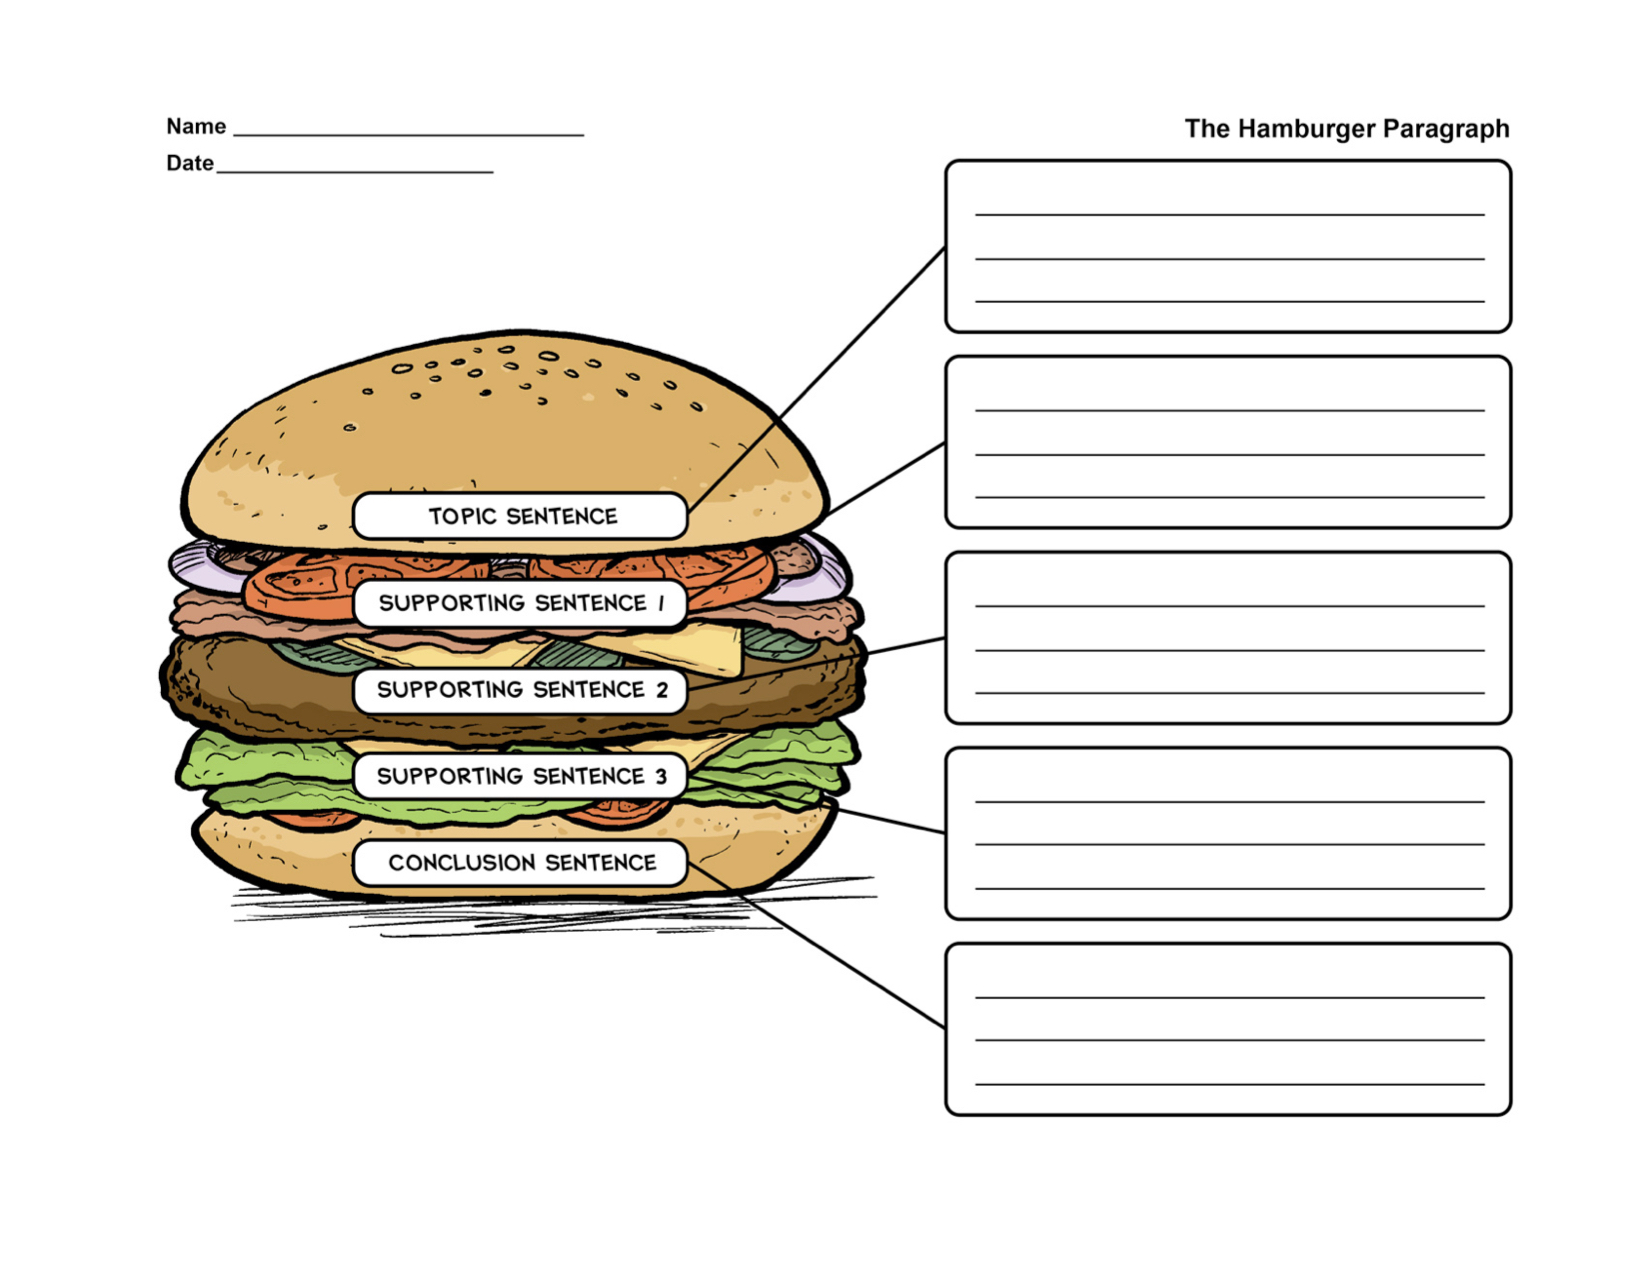 5 paragraph essay structure bullying persuasive essay